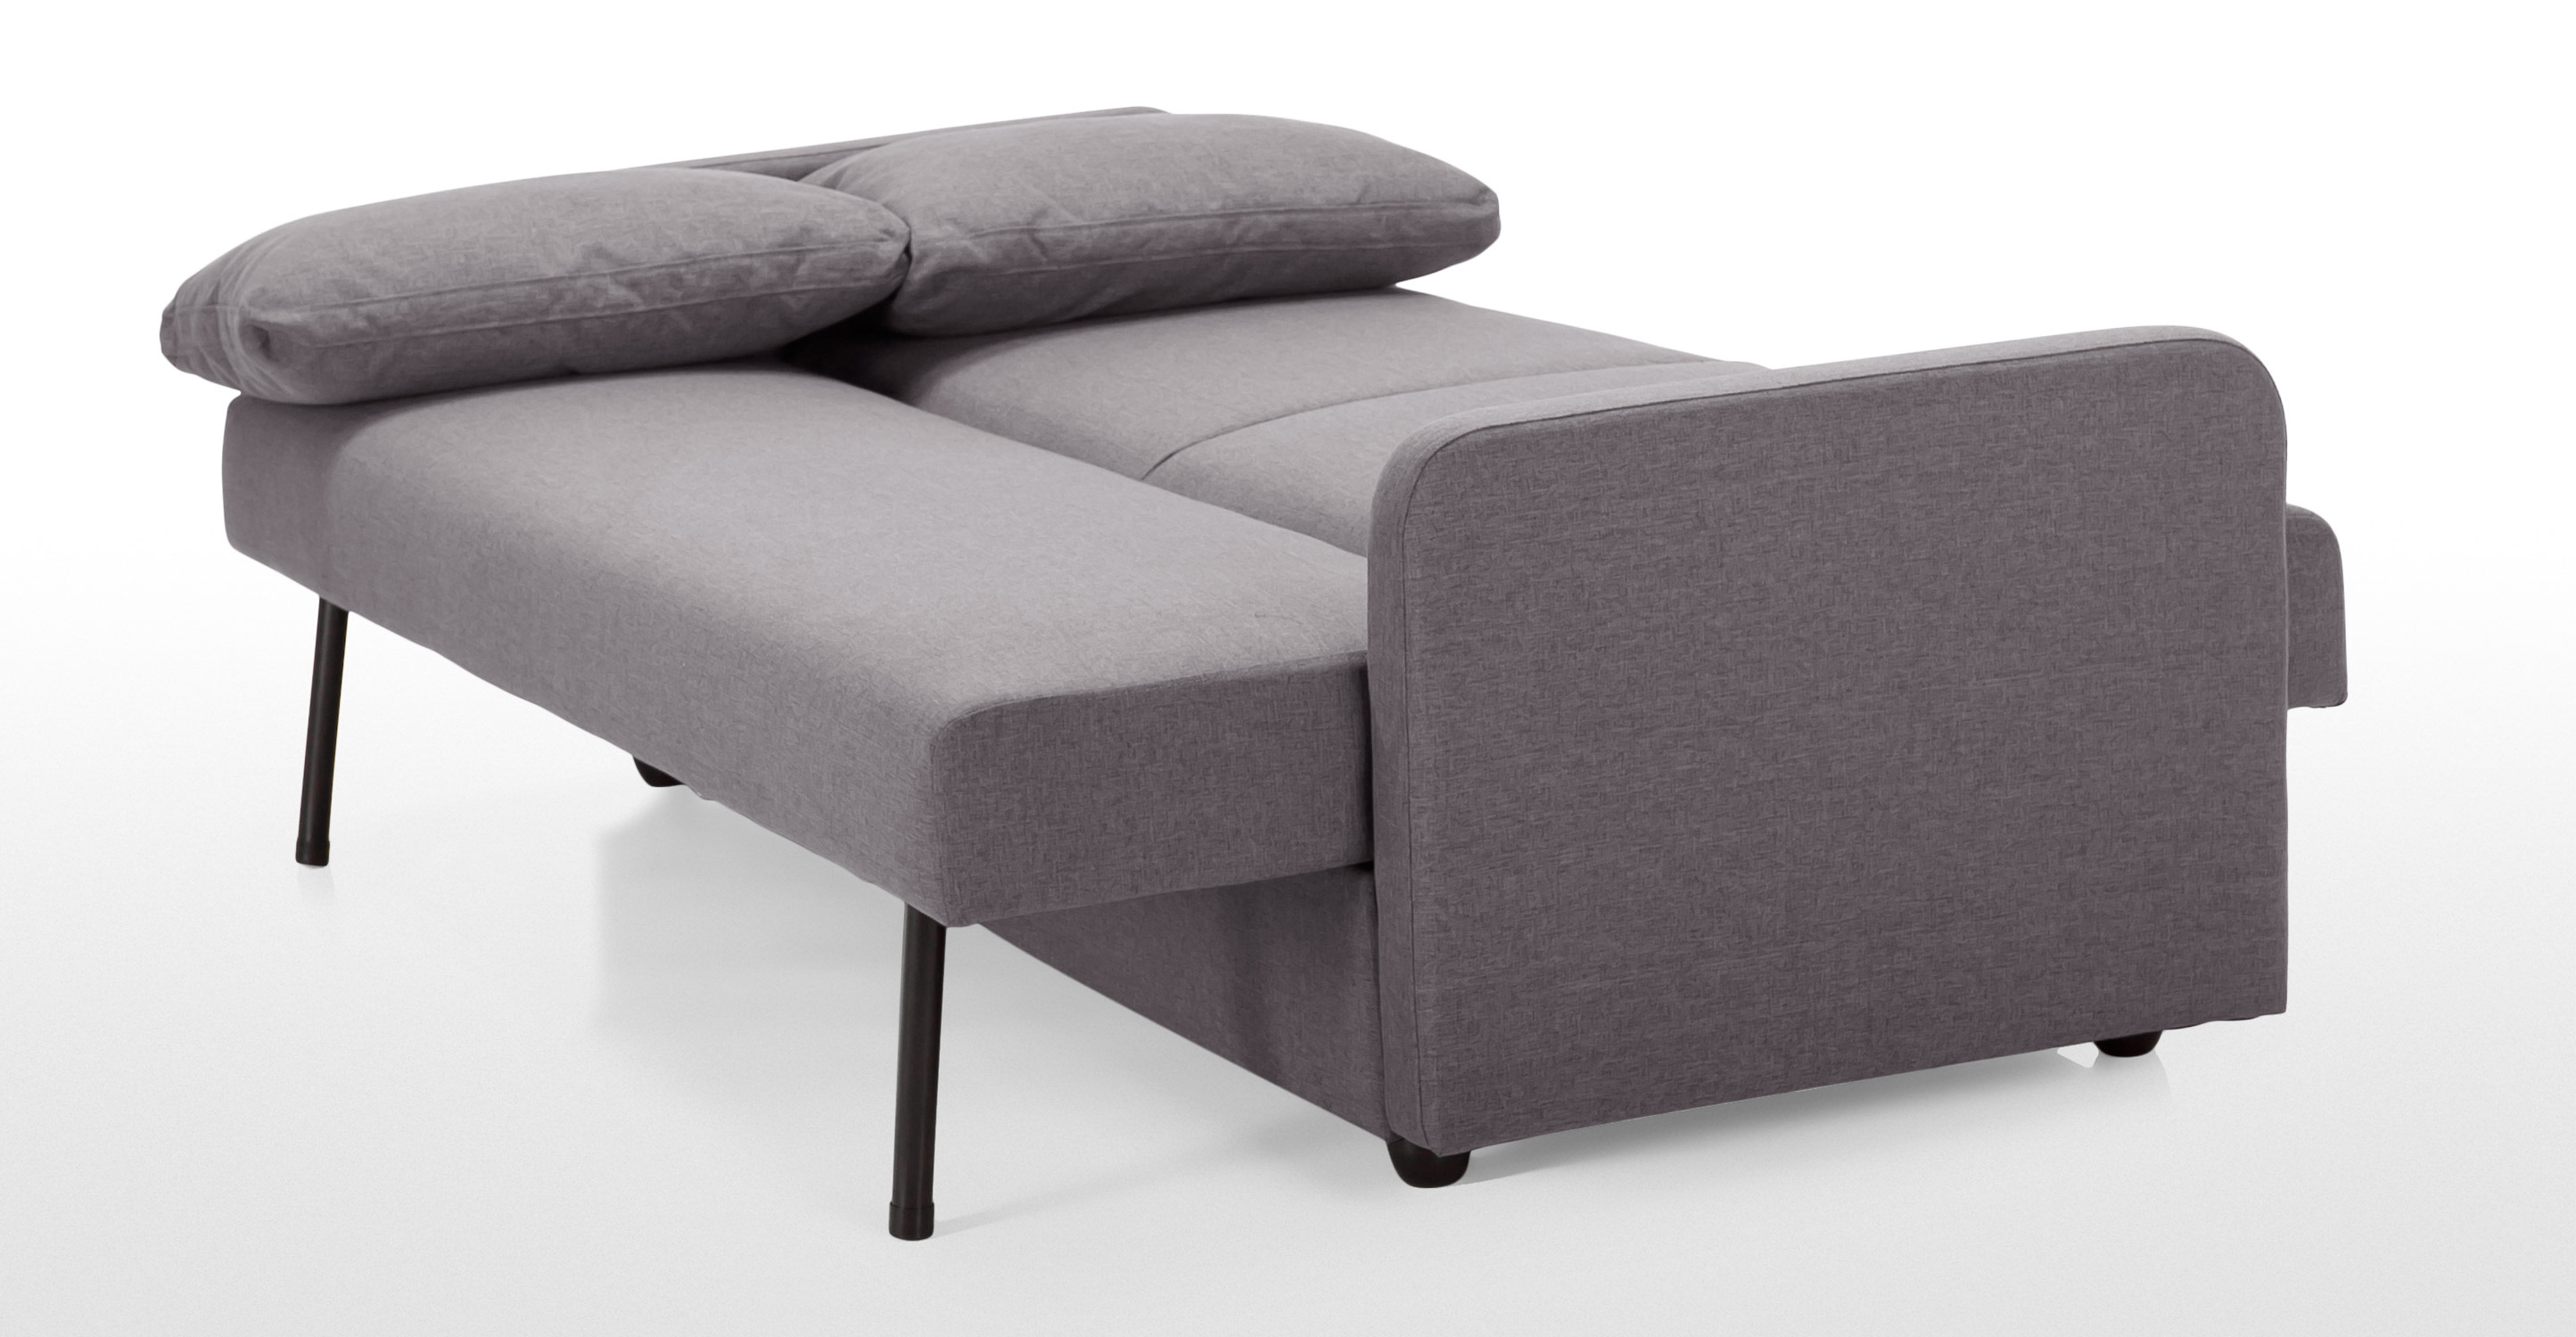 Weston Sofa Bed In Basalt Grey